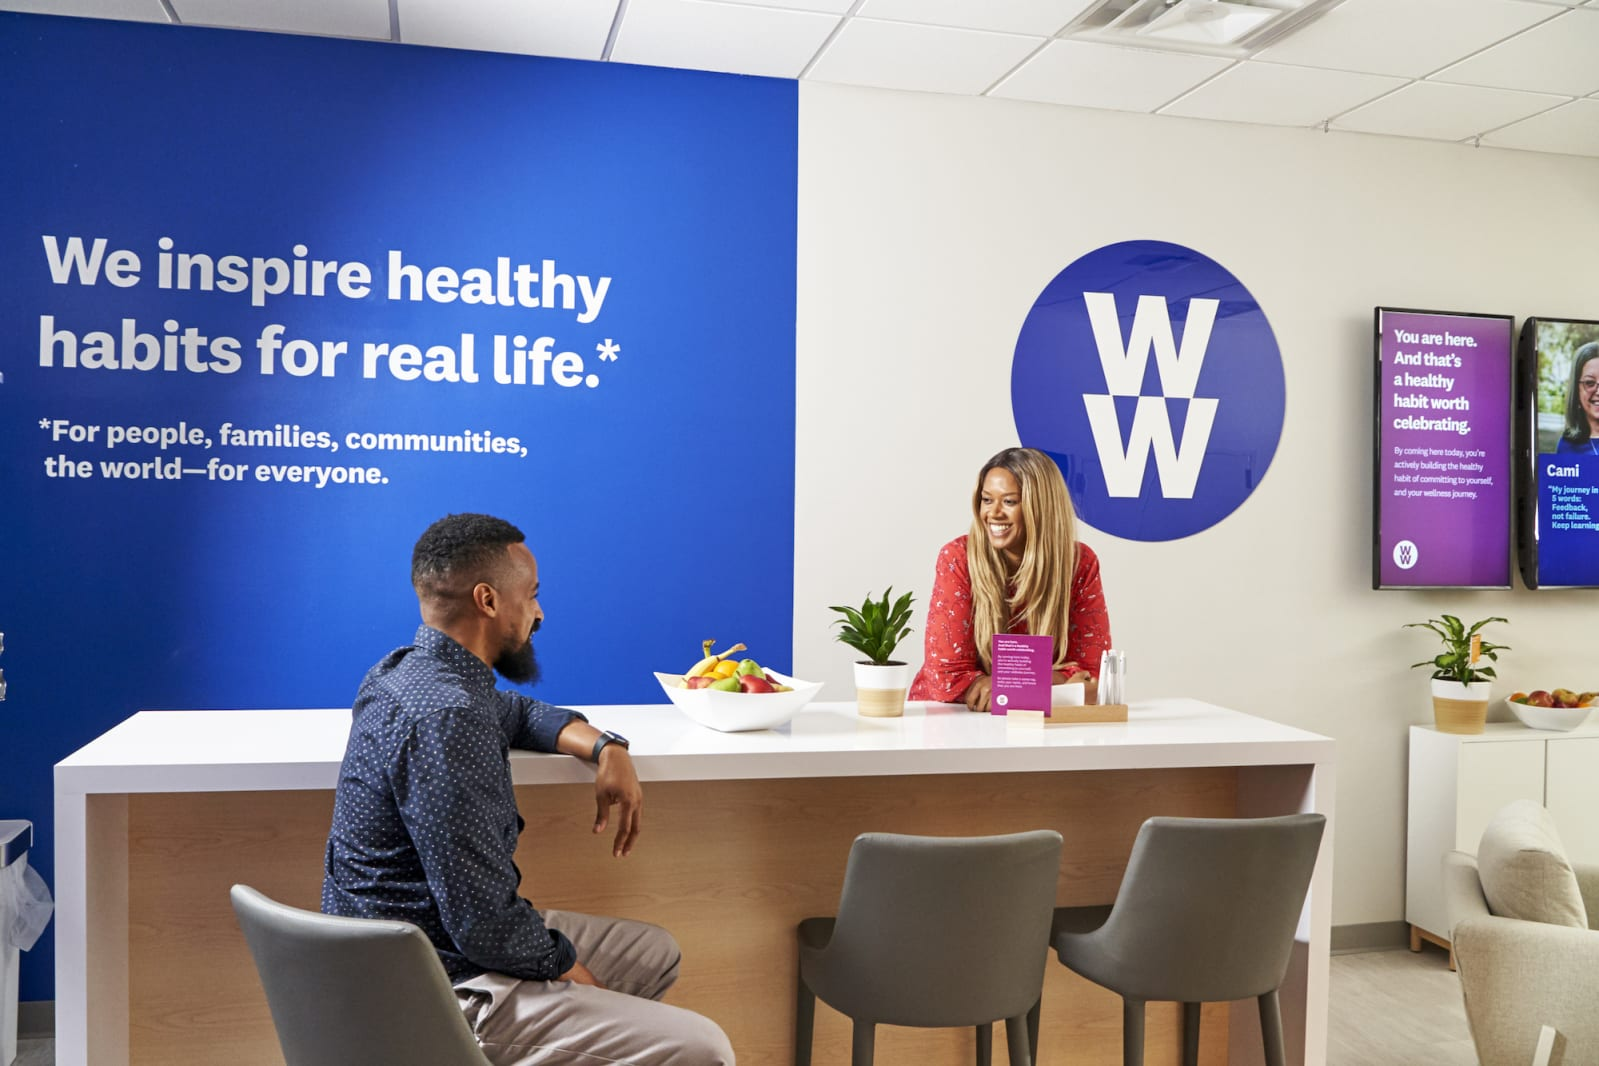 Weight Watchers is trying to avoid becoming the next Kodak